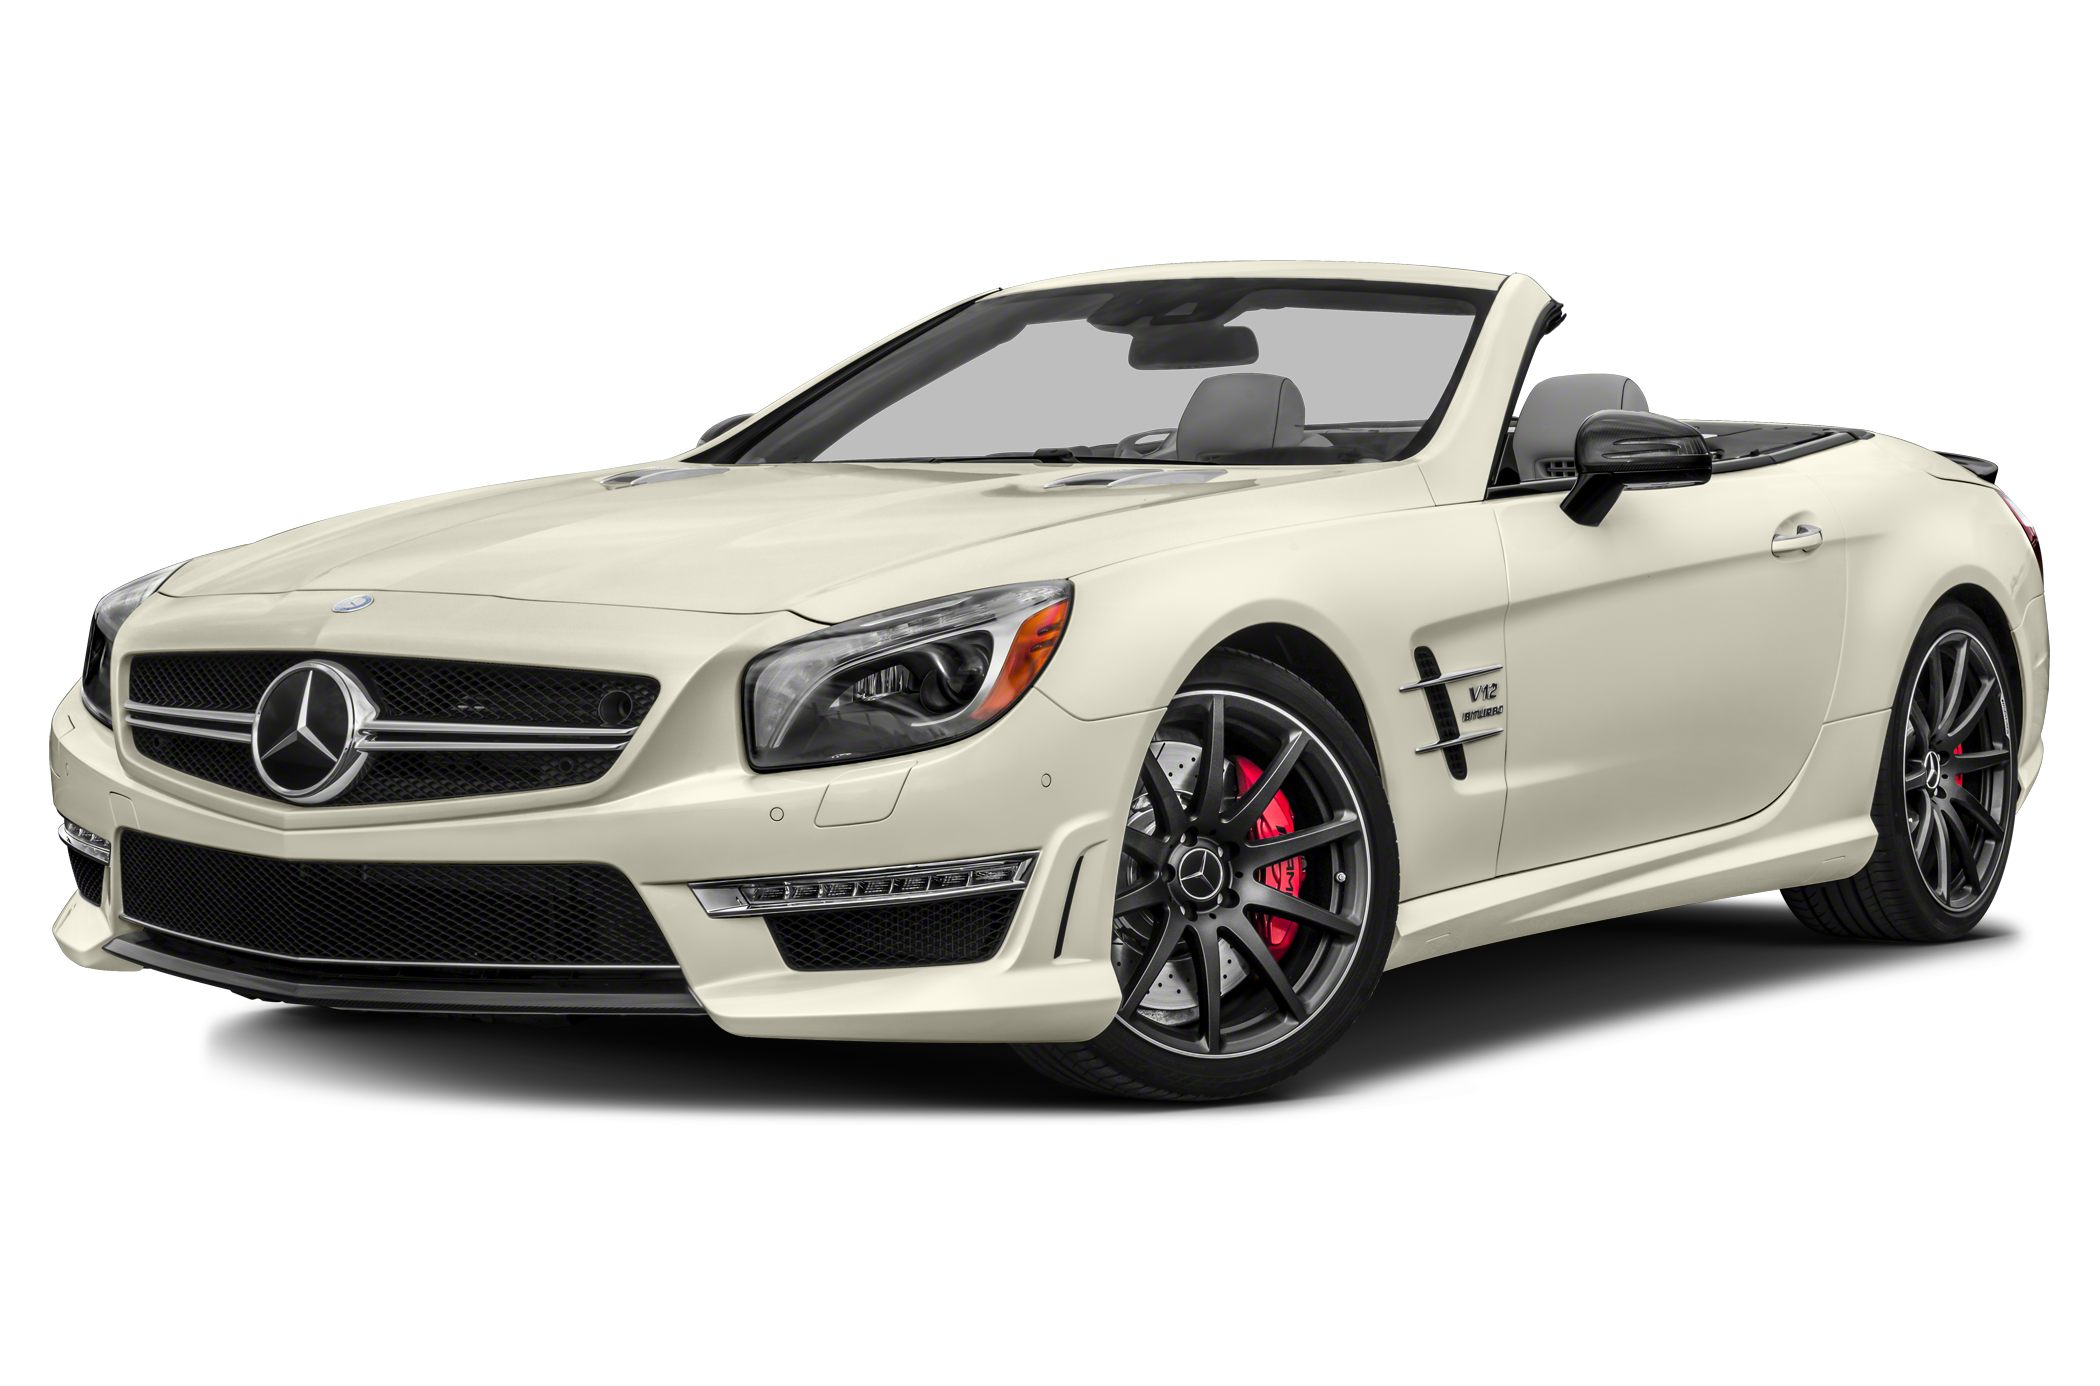 2014 Mercedes Benz SL Class Specs and Prices